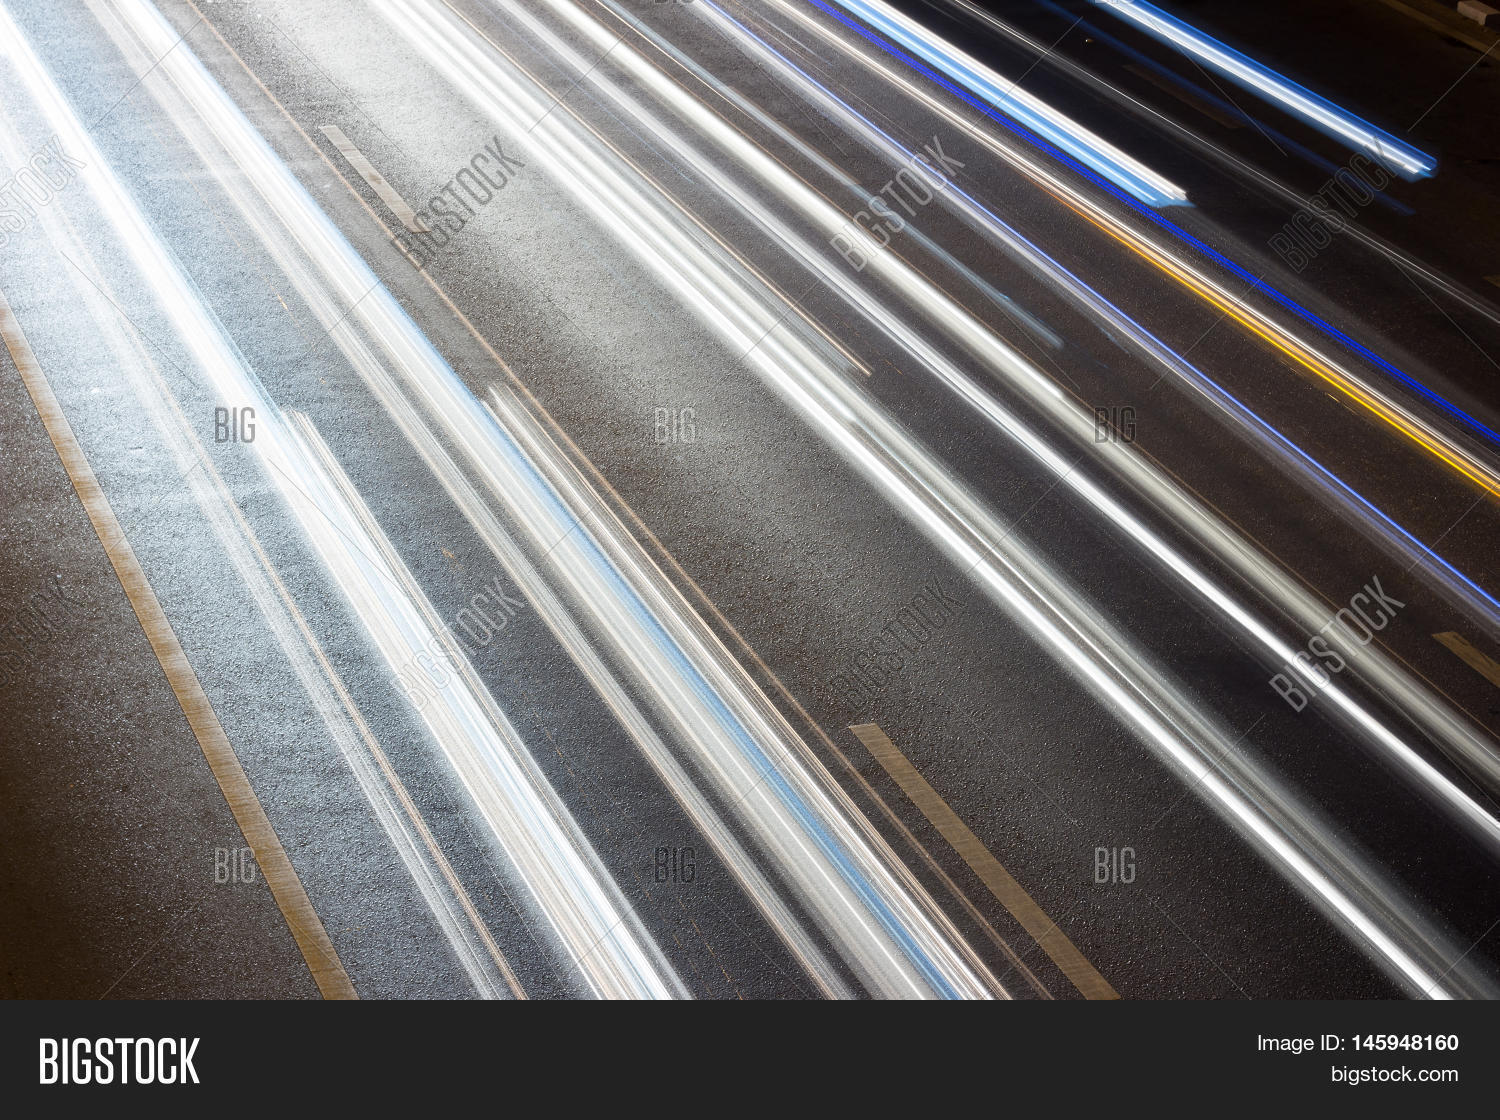 Light Blurred Light Car Abstract Image & Photo | Bigstock